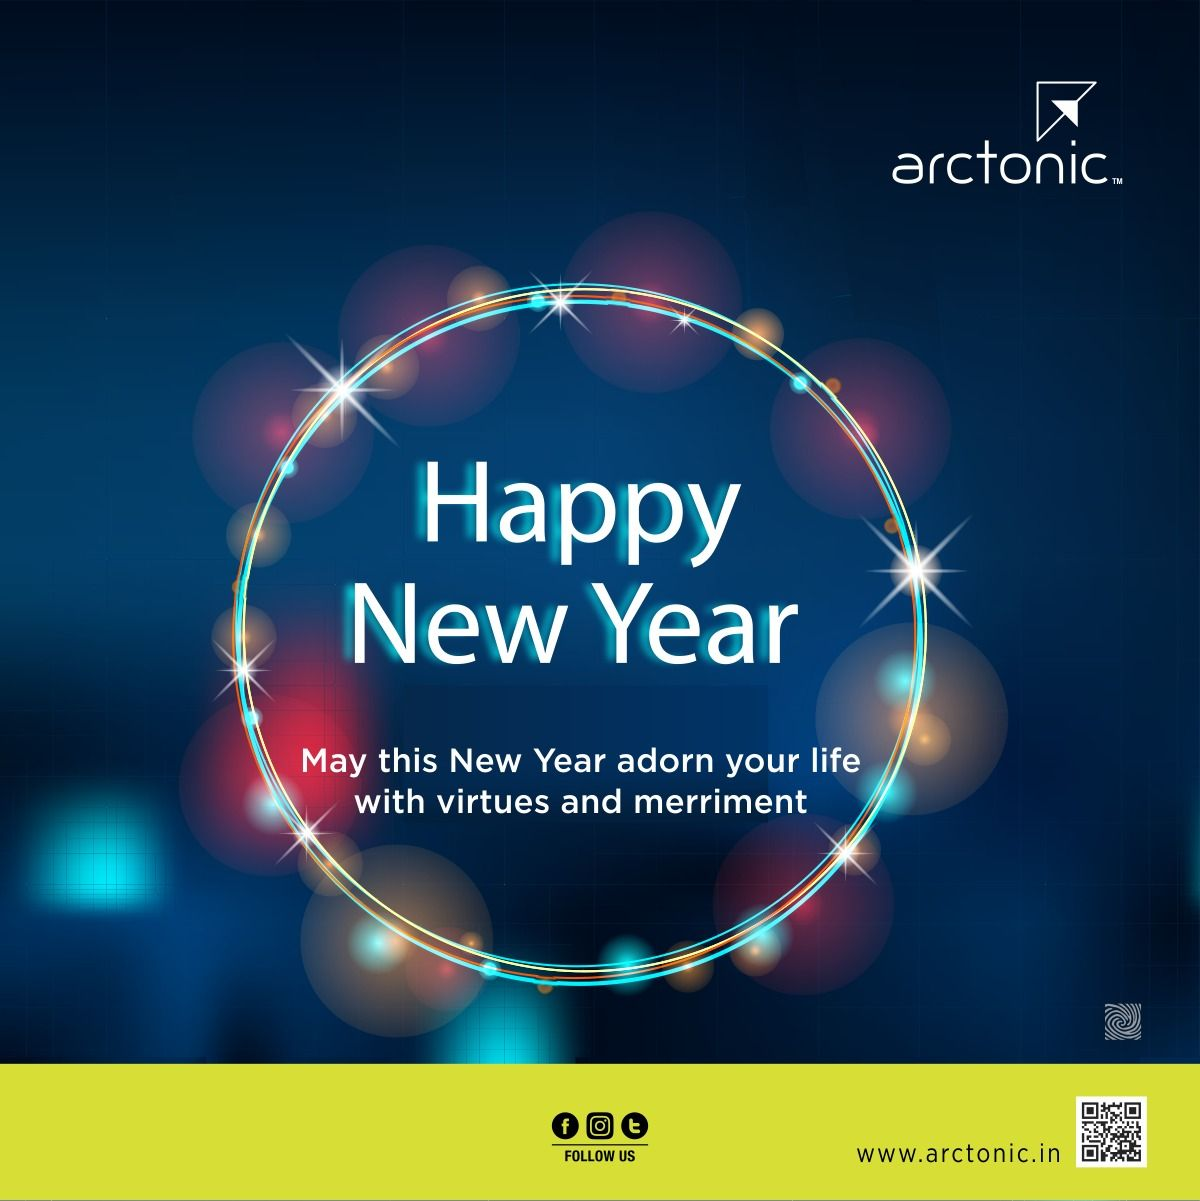 May This New Year Adorn Your Life With Virtues And Merriment Happy New Year Arctonic Laminates Luxury Desi Happy New Year Indian Festivals Gujarati News